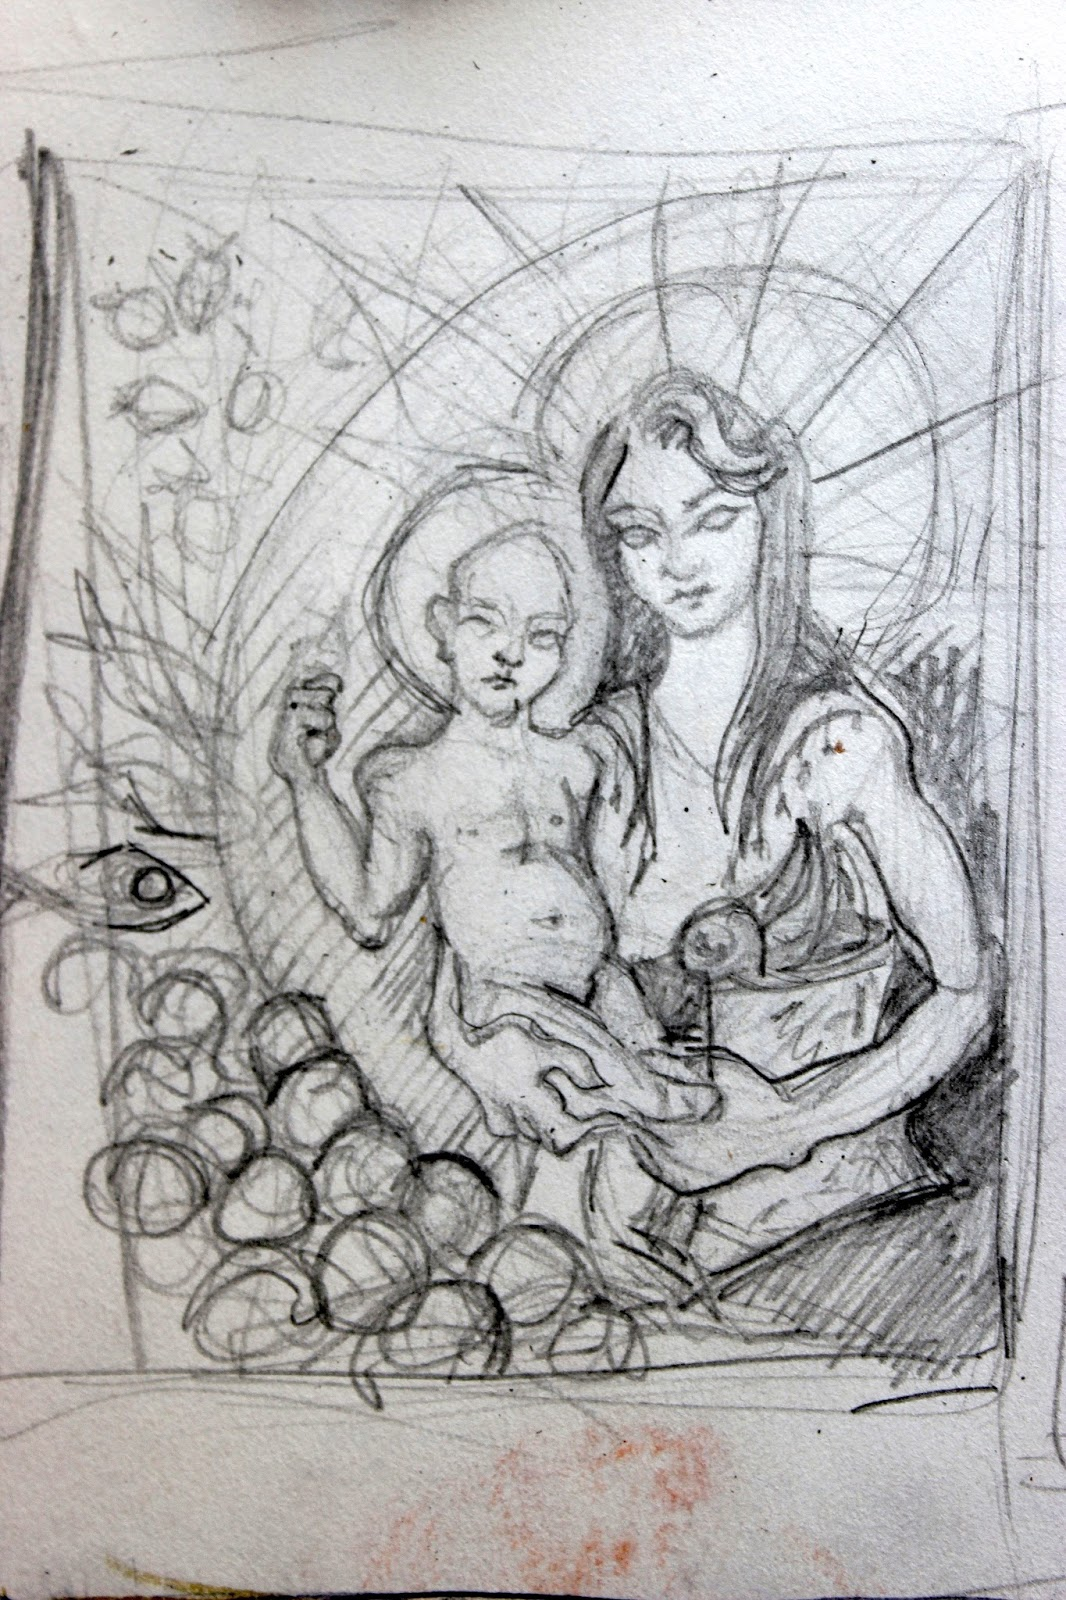 Drawing Sketch Illustration Pencil Sketchpad Notebook Colour Madonna and Child